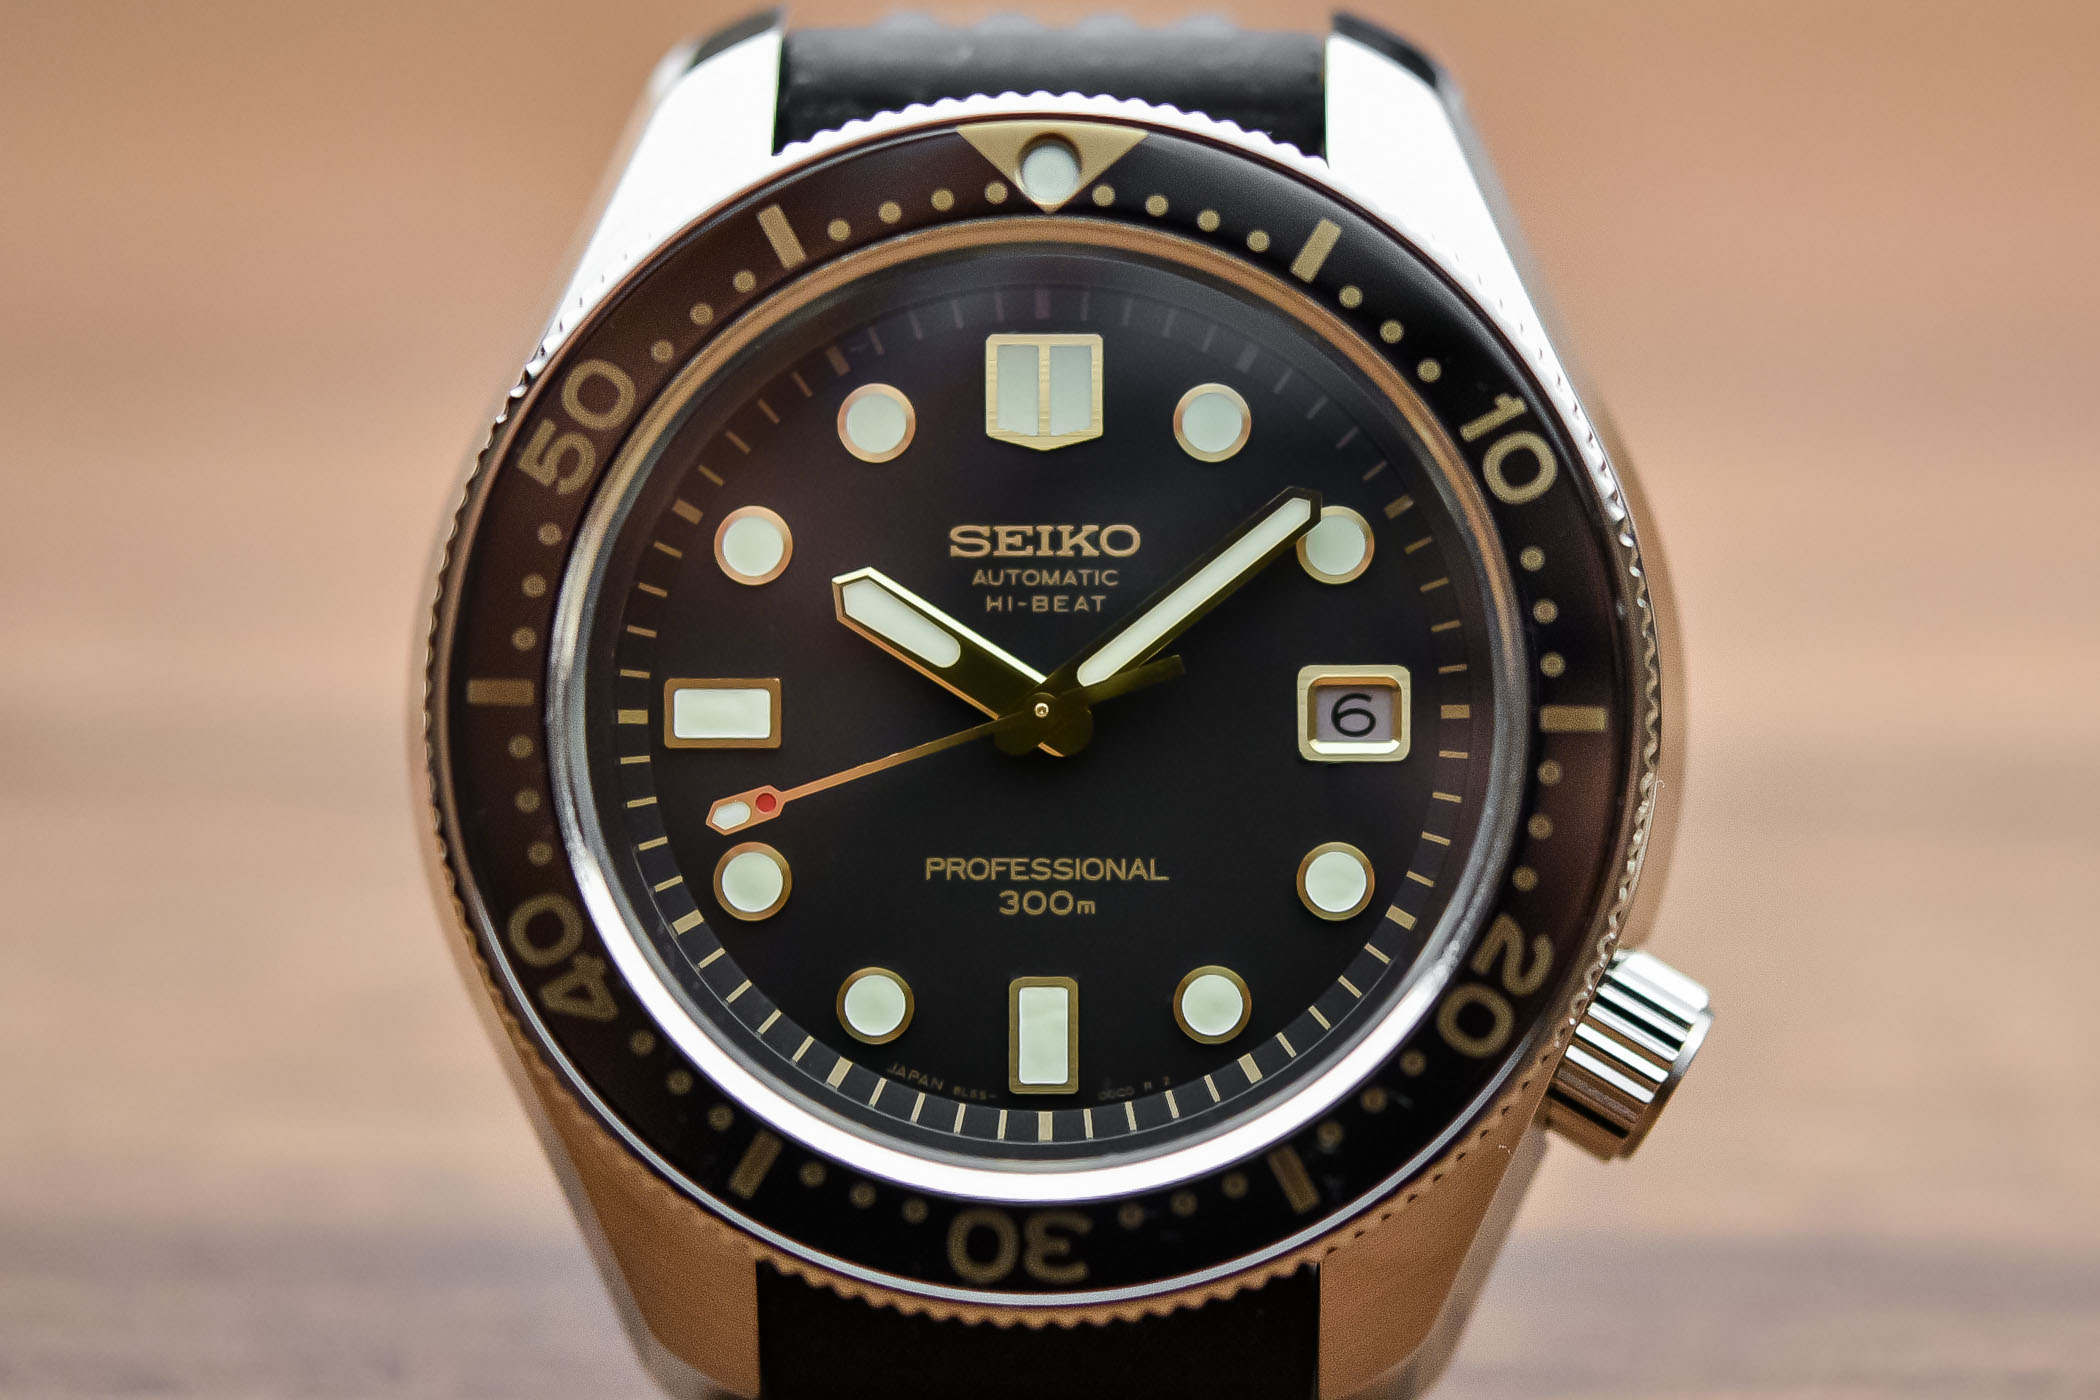 Seiko Prospex Diver 300m Hi-Beat SLA025 – Recreation 1968 Ref. 6159-7001